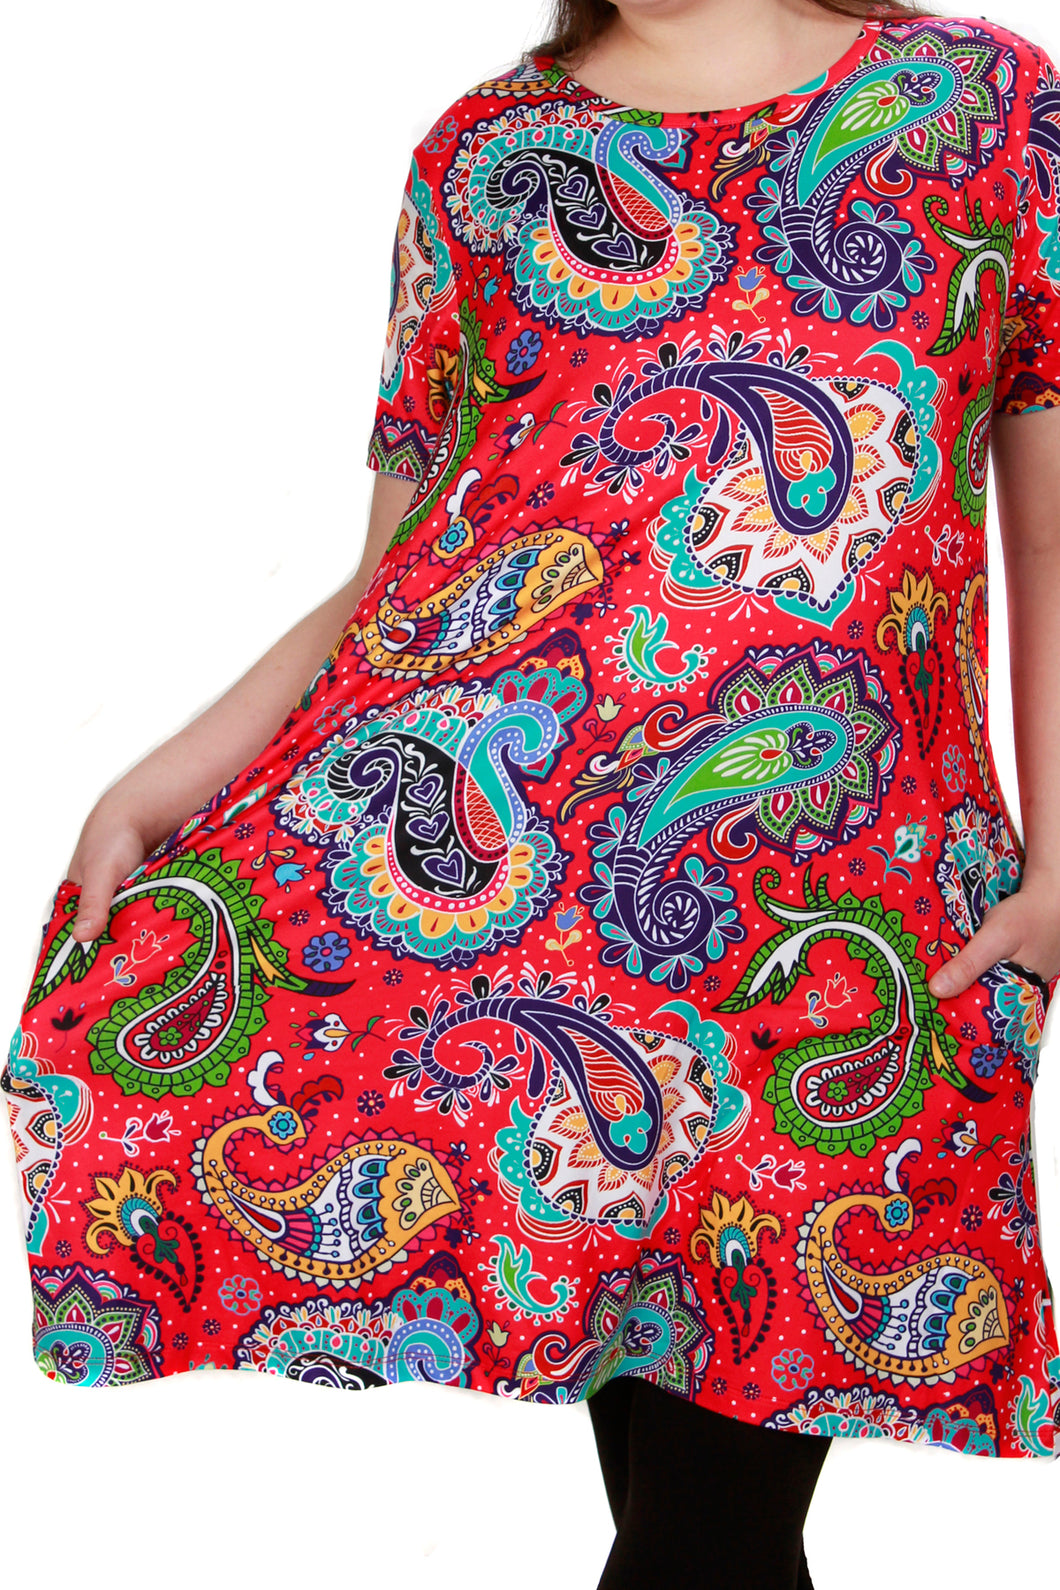 Penelope Dress Margarita Paisley